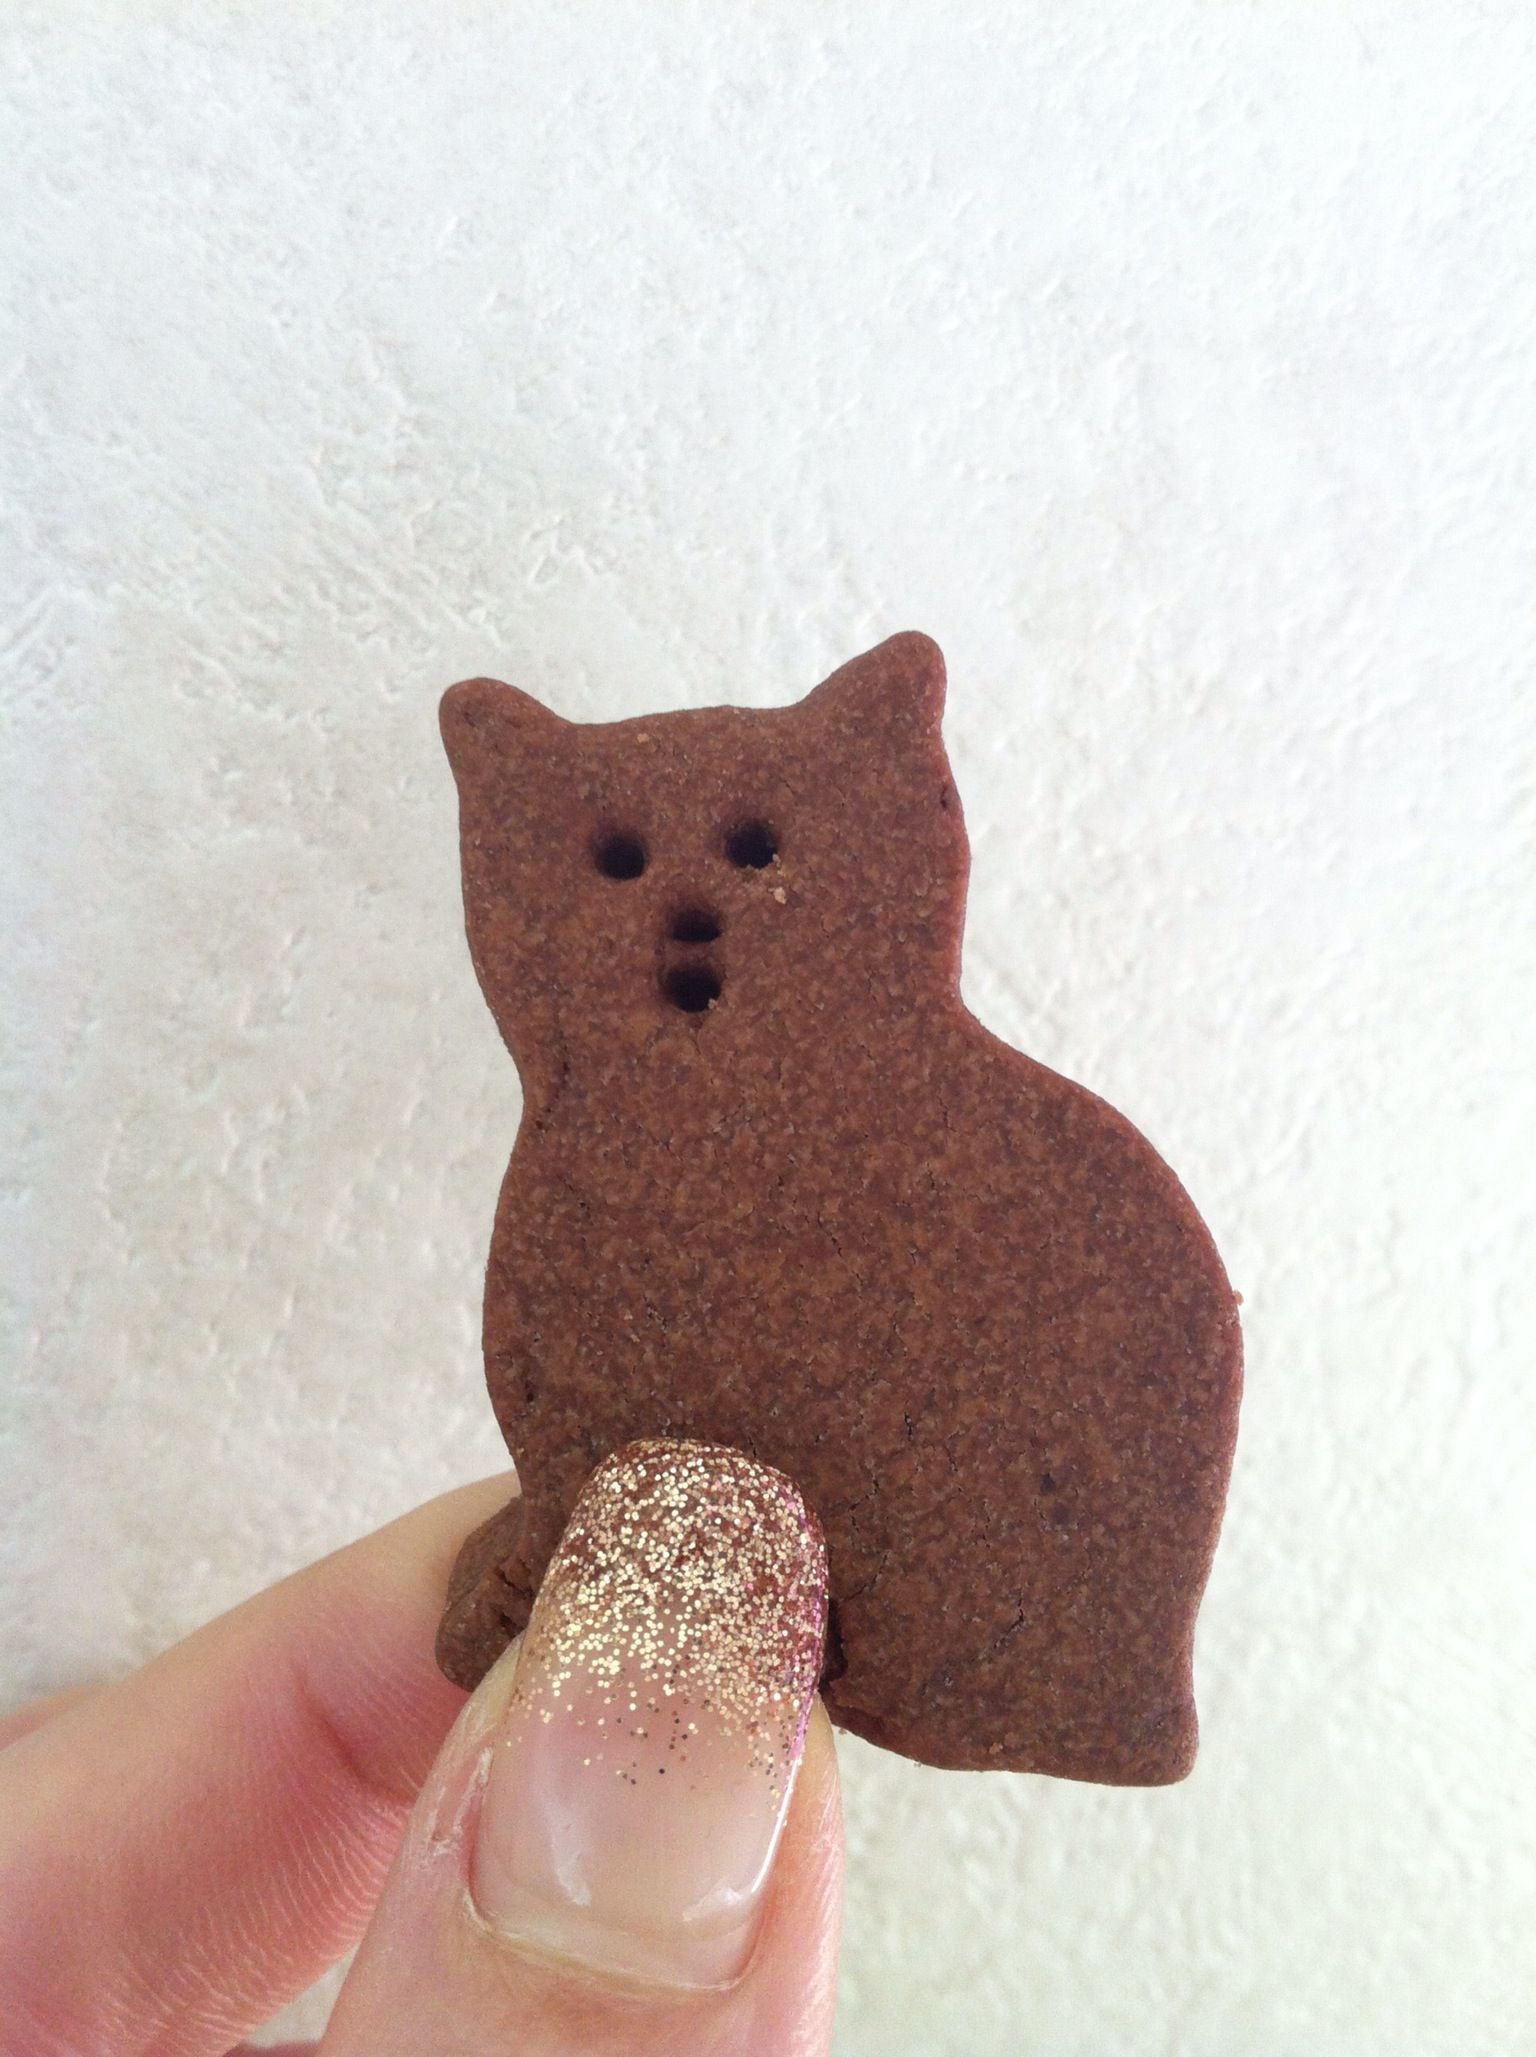 Meow cookie